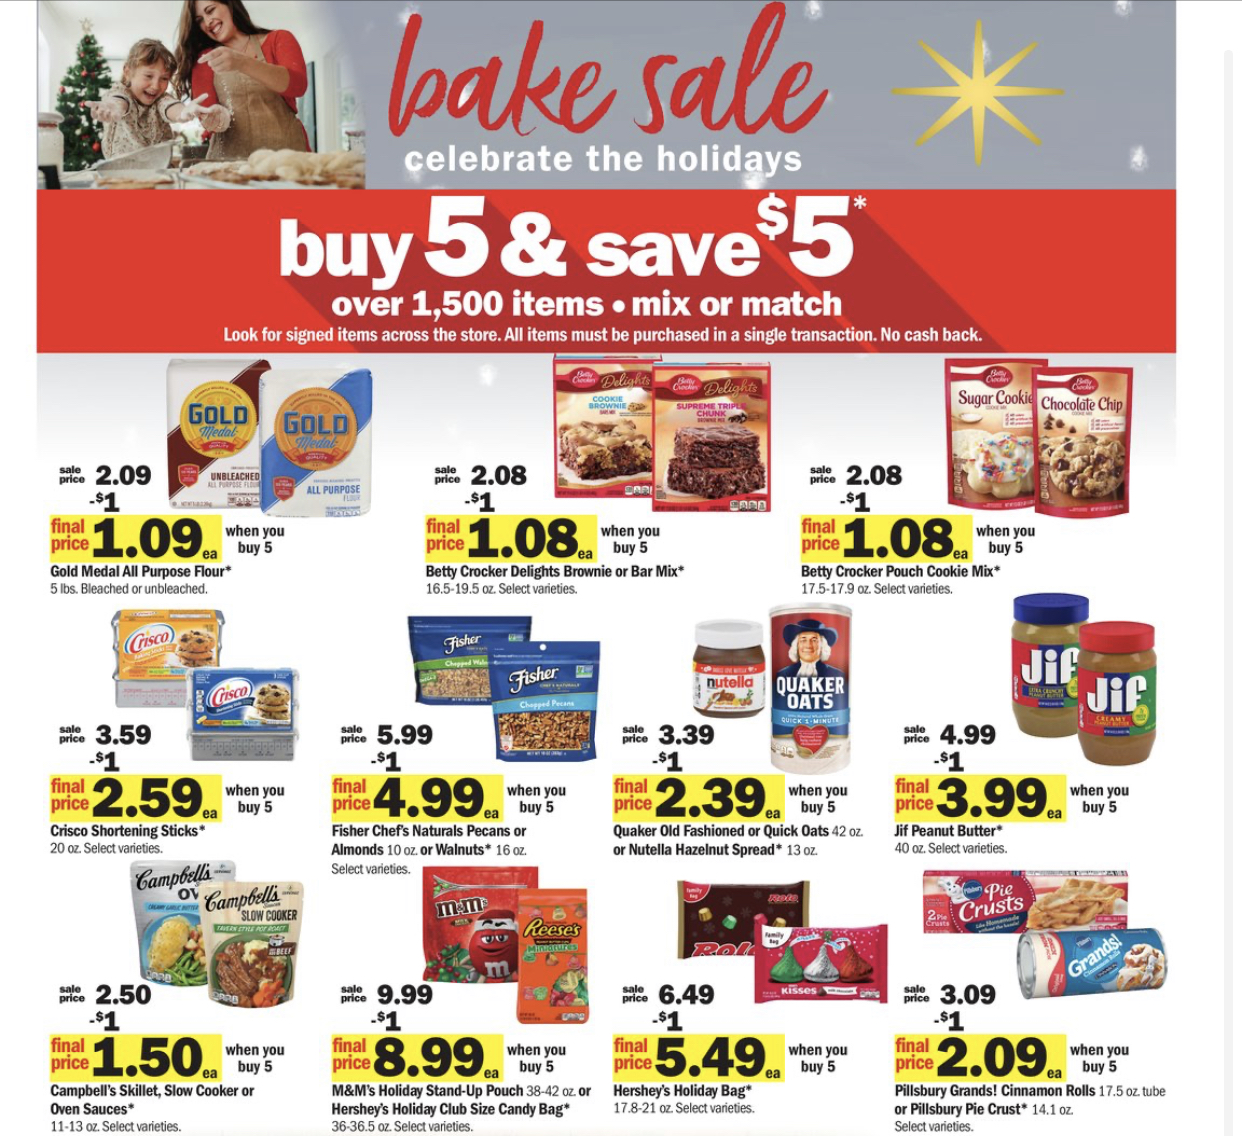 Meijer Bake Sale- Buy 5, Save $5 Instantly 11/29-12/5/2020